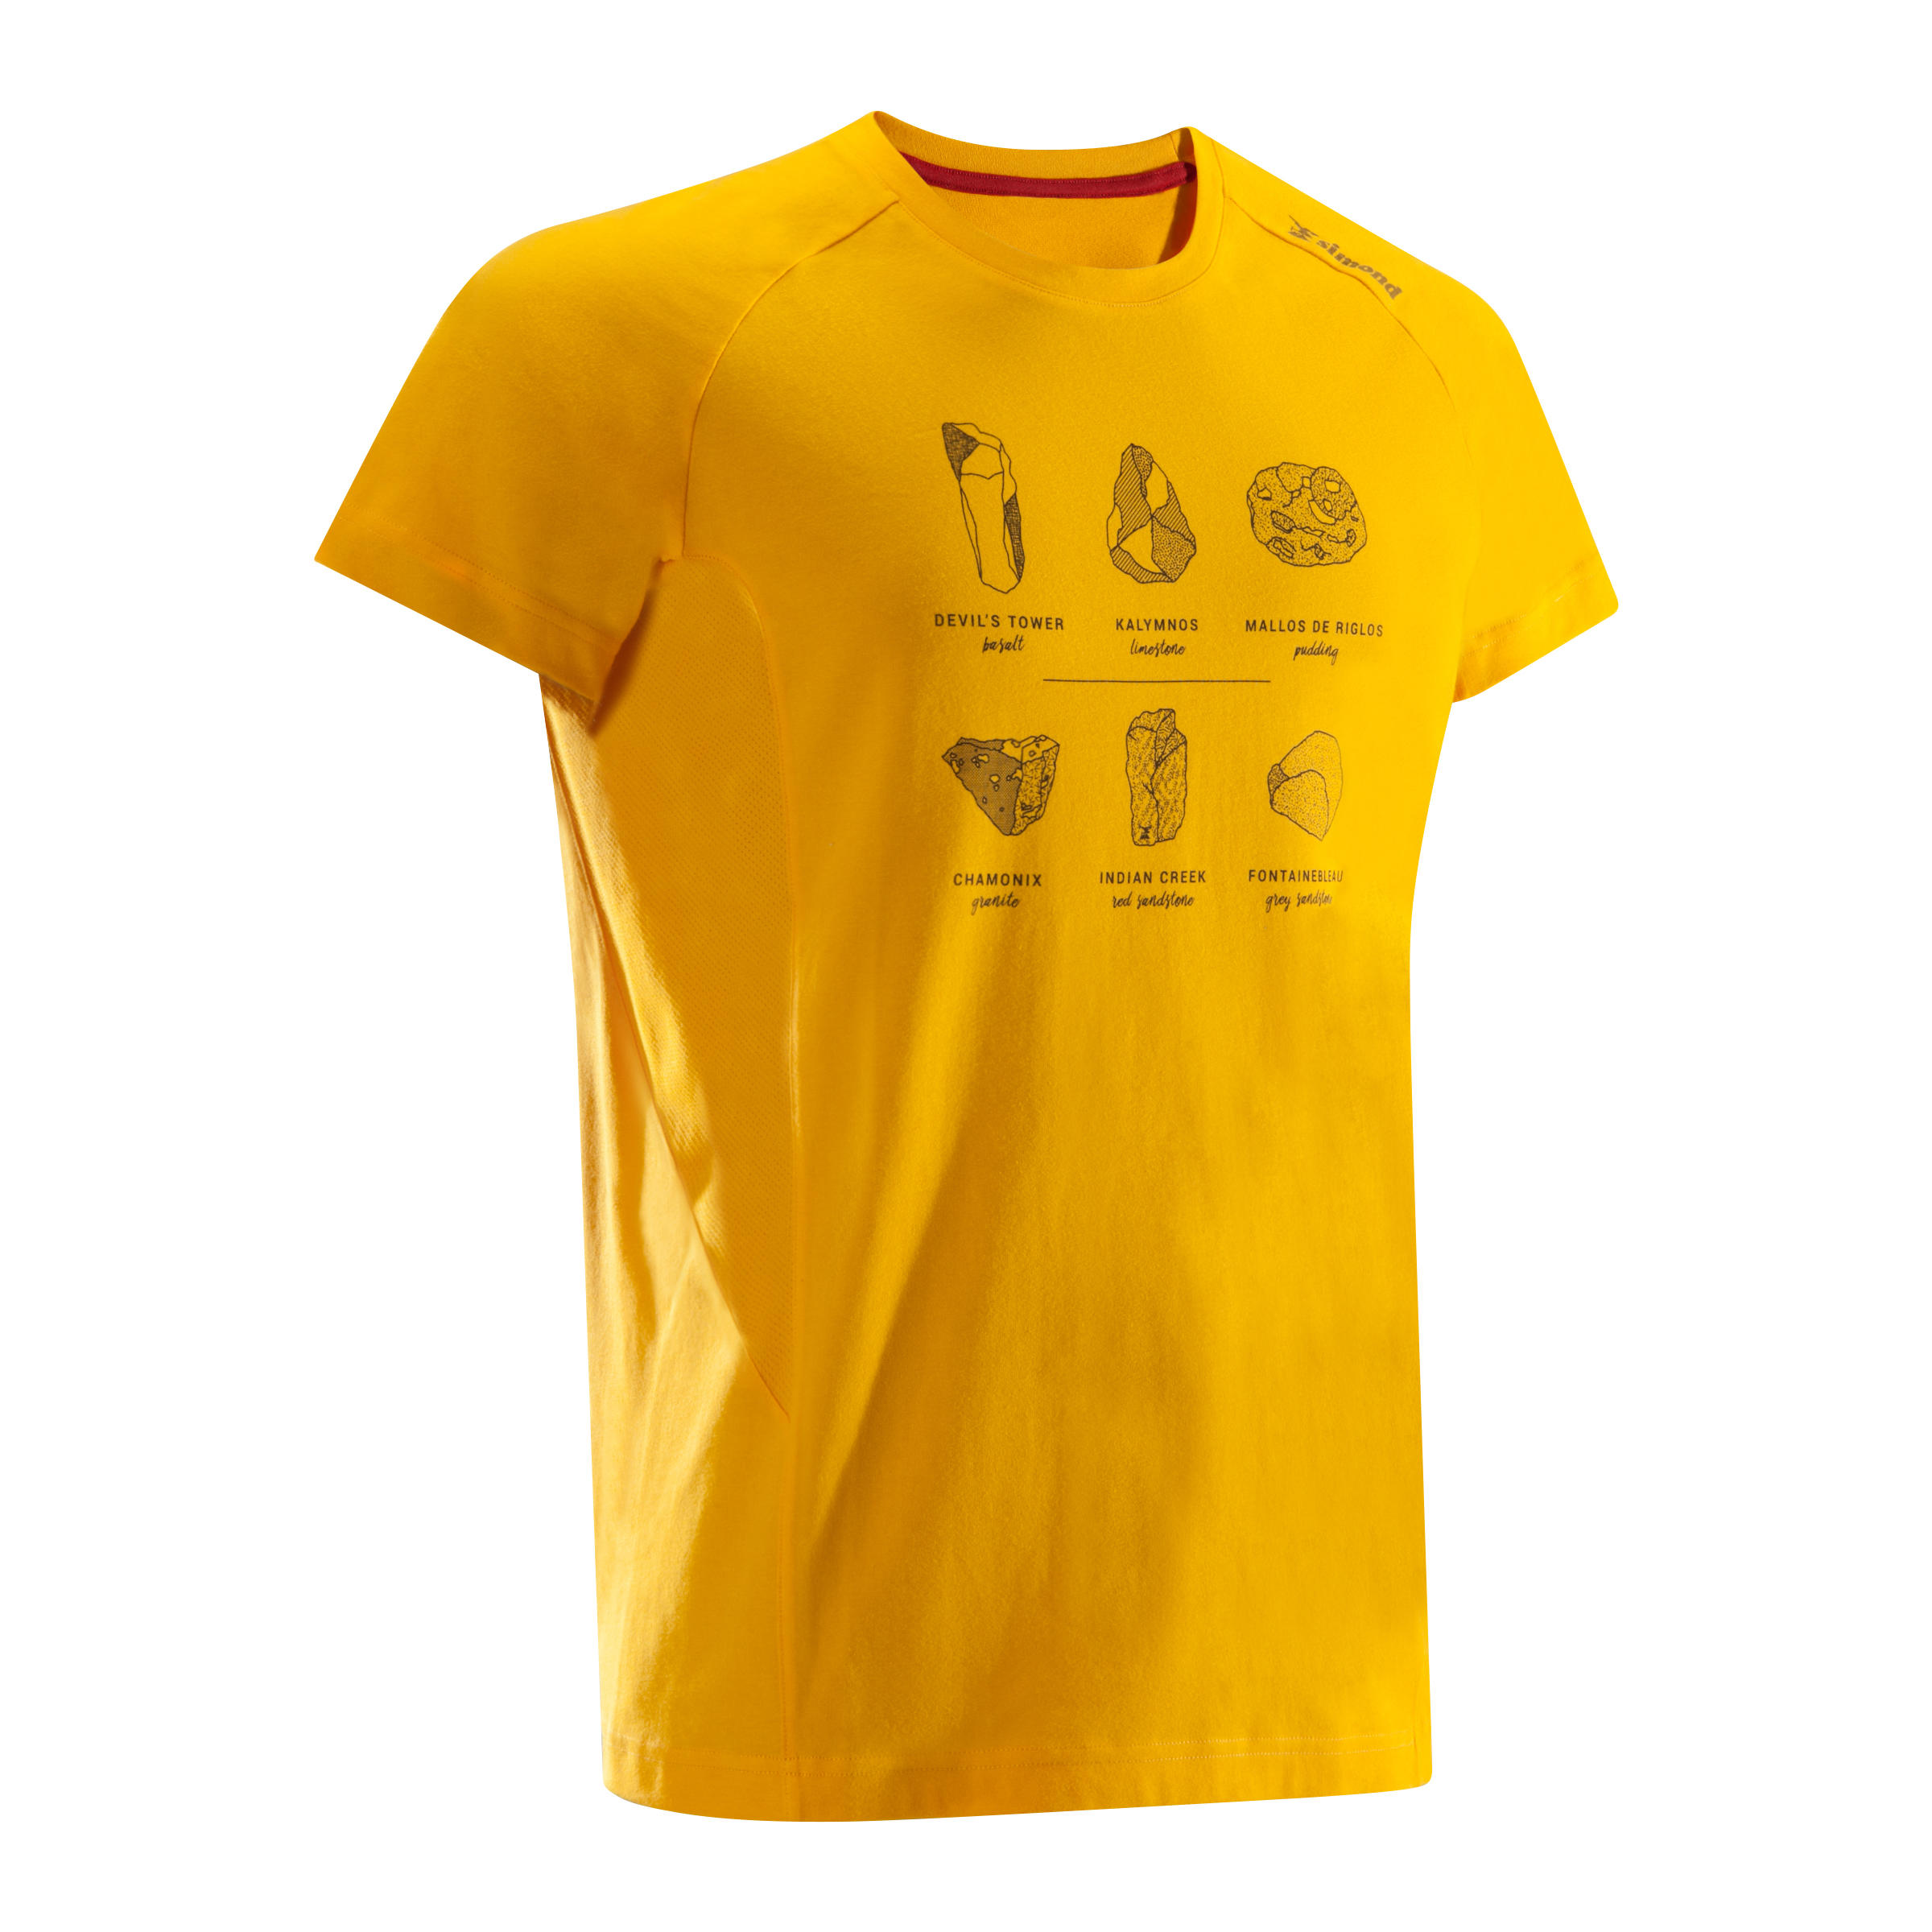 Stones Men's Short-Sleeved T-Shirt - Yellow